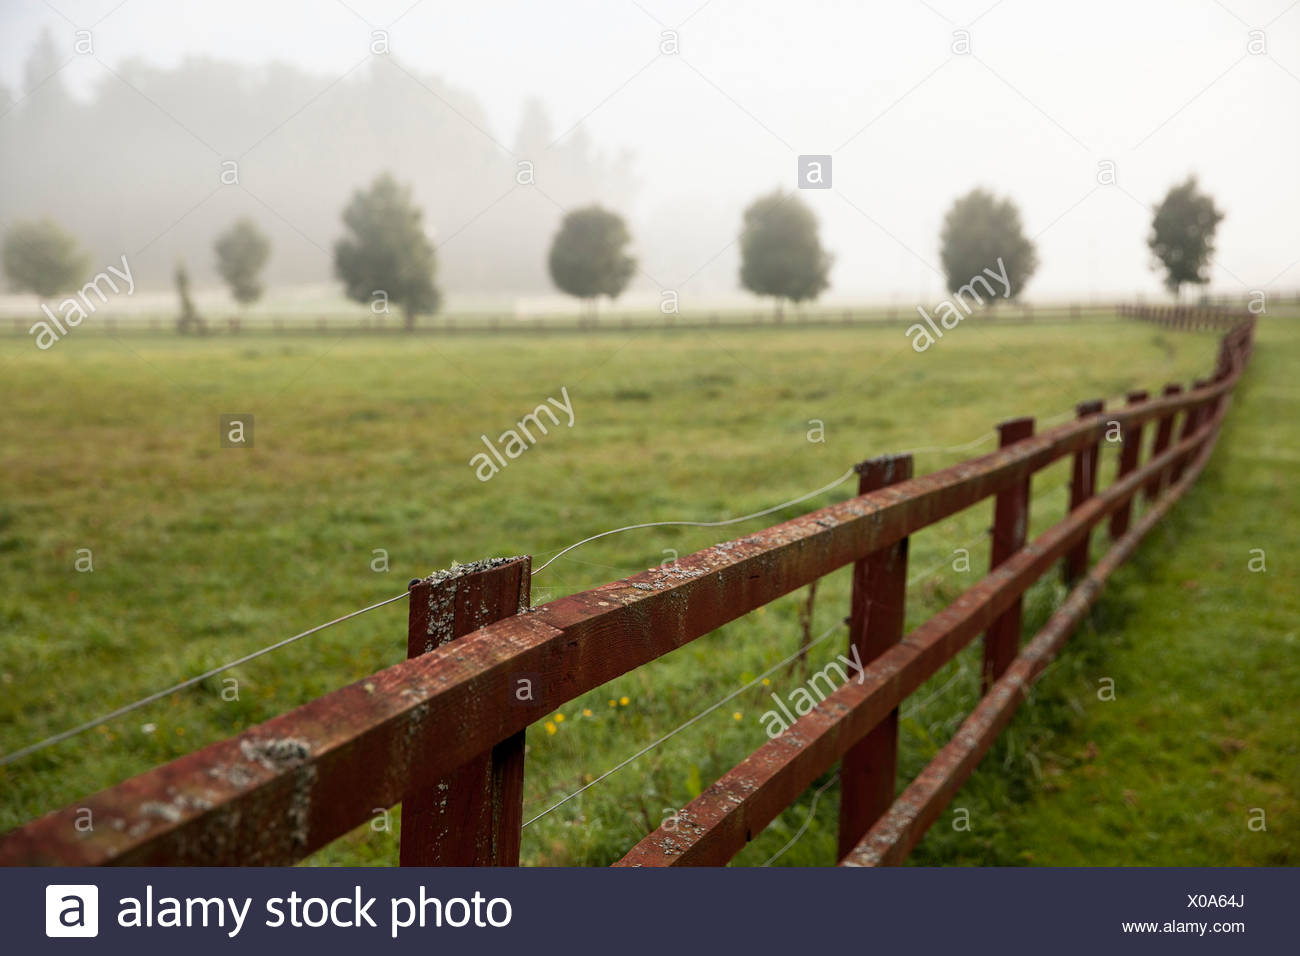 Wooden fence in field - Stock Image